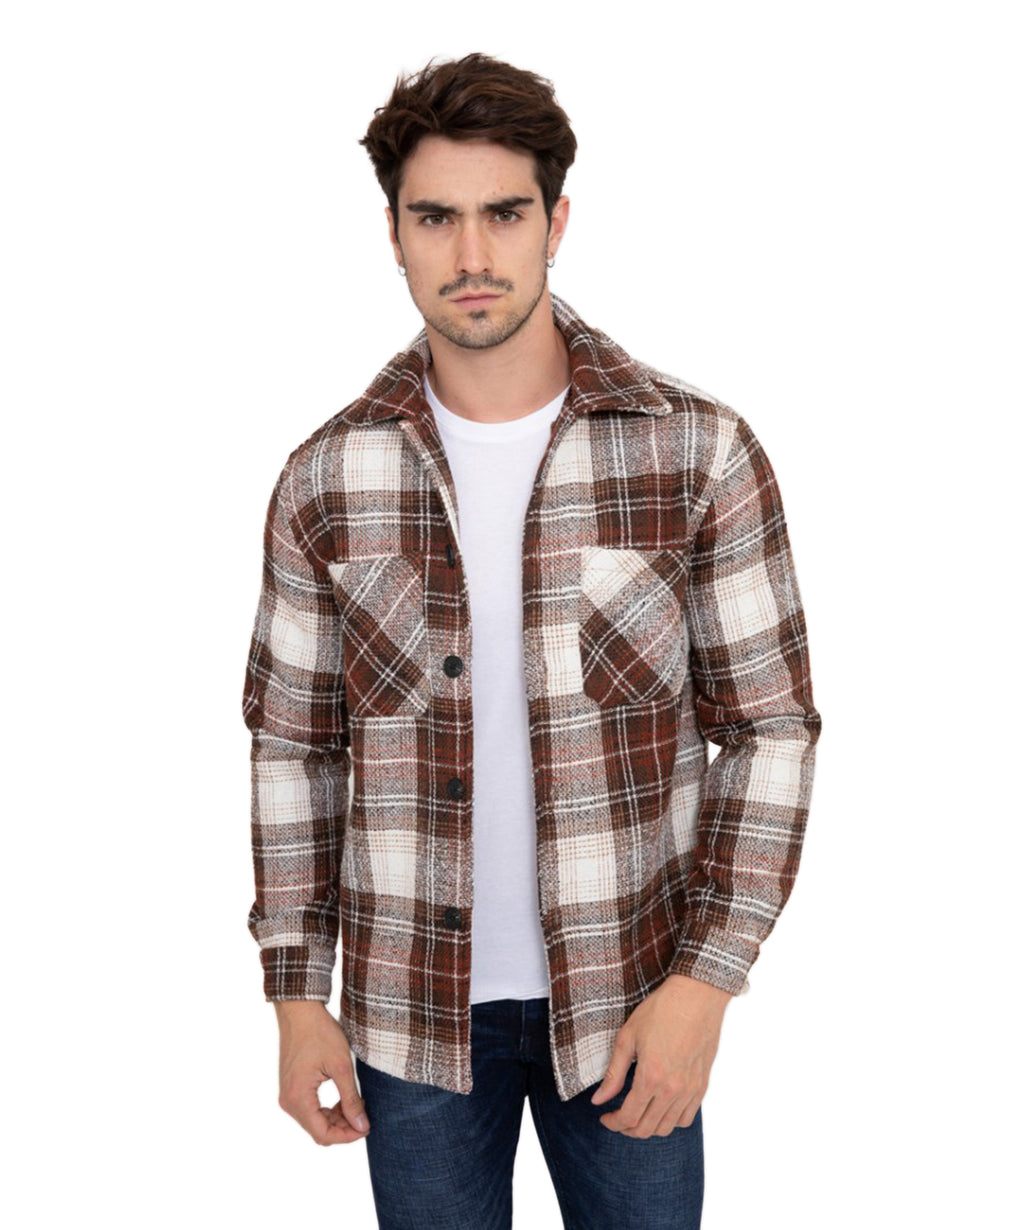 FLANNEL BROWN - Vaarora